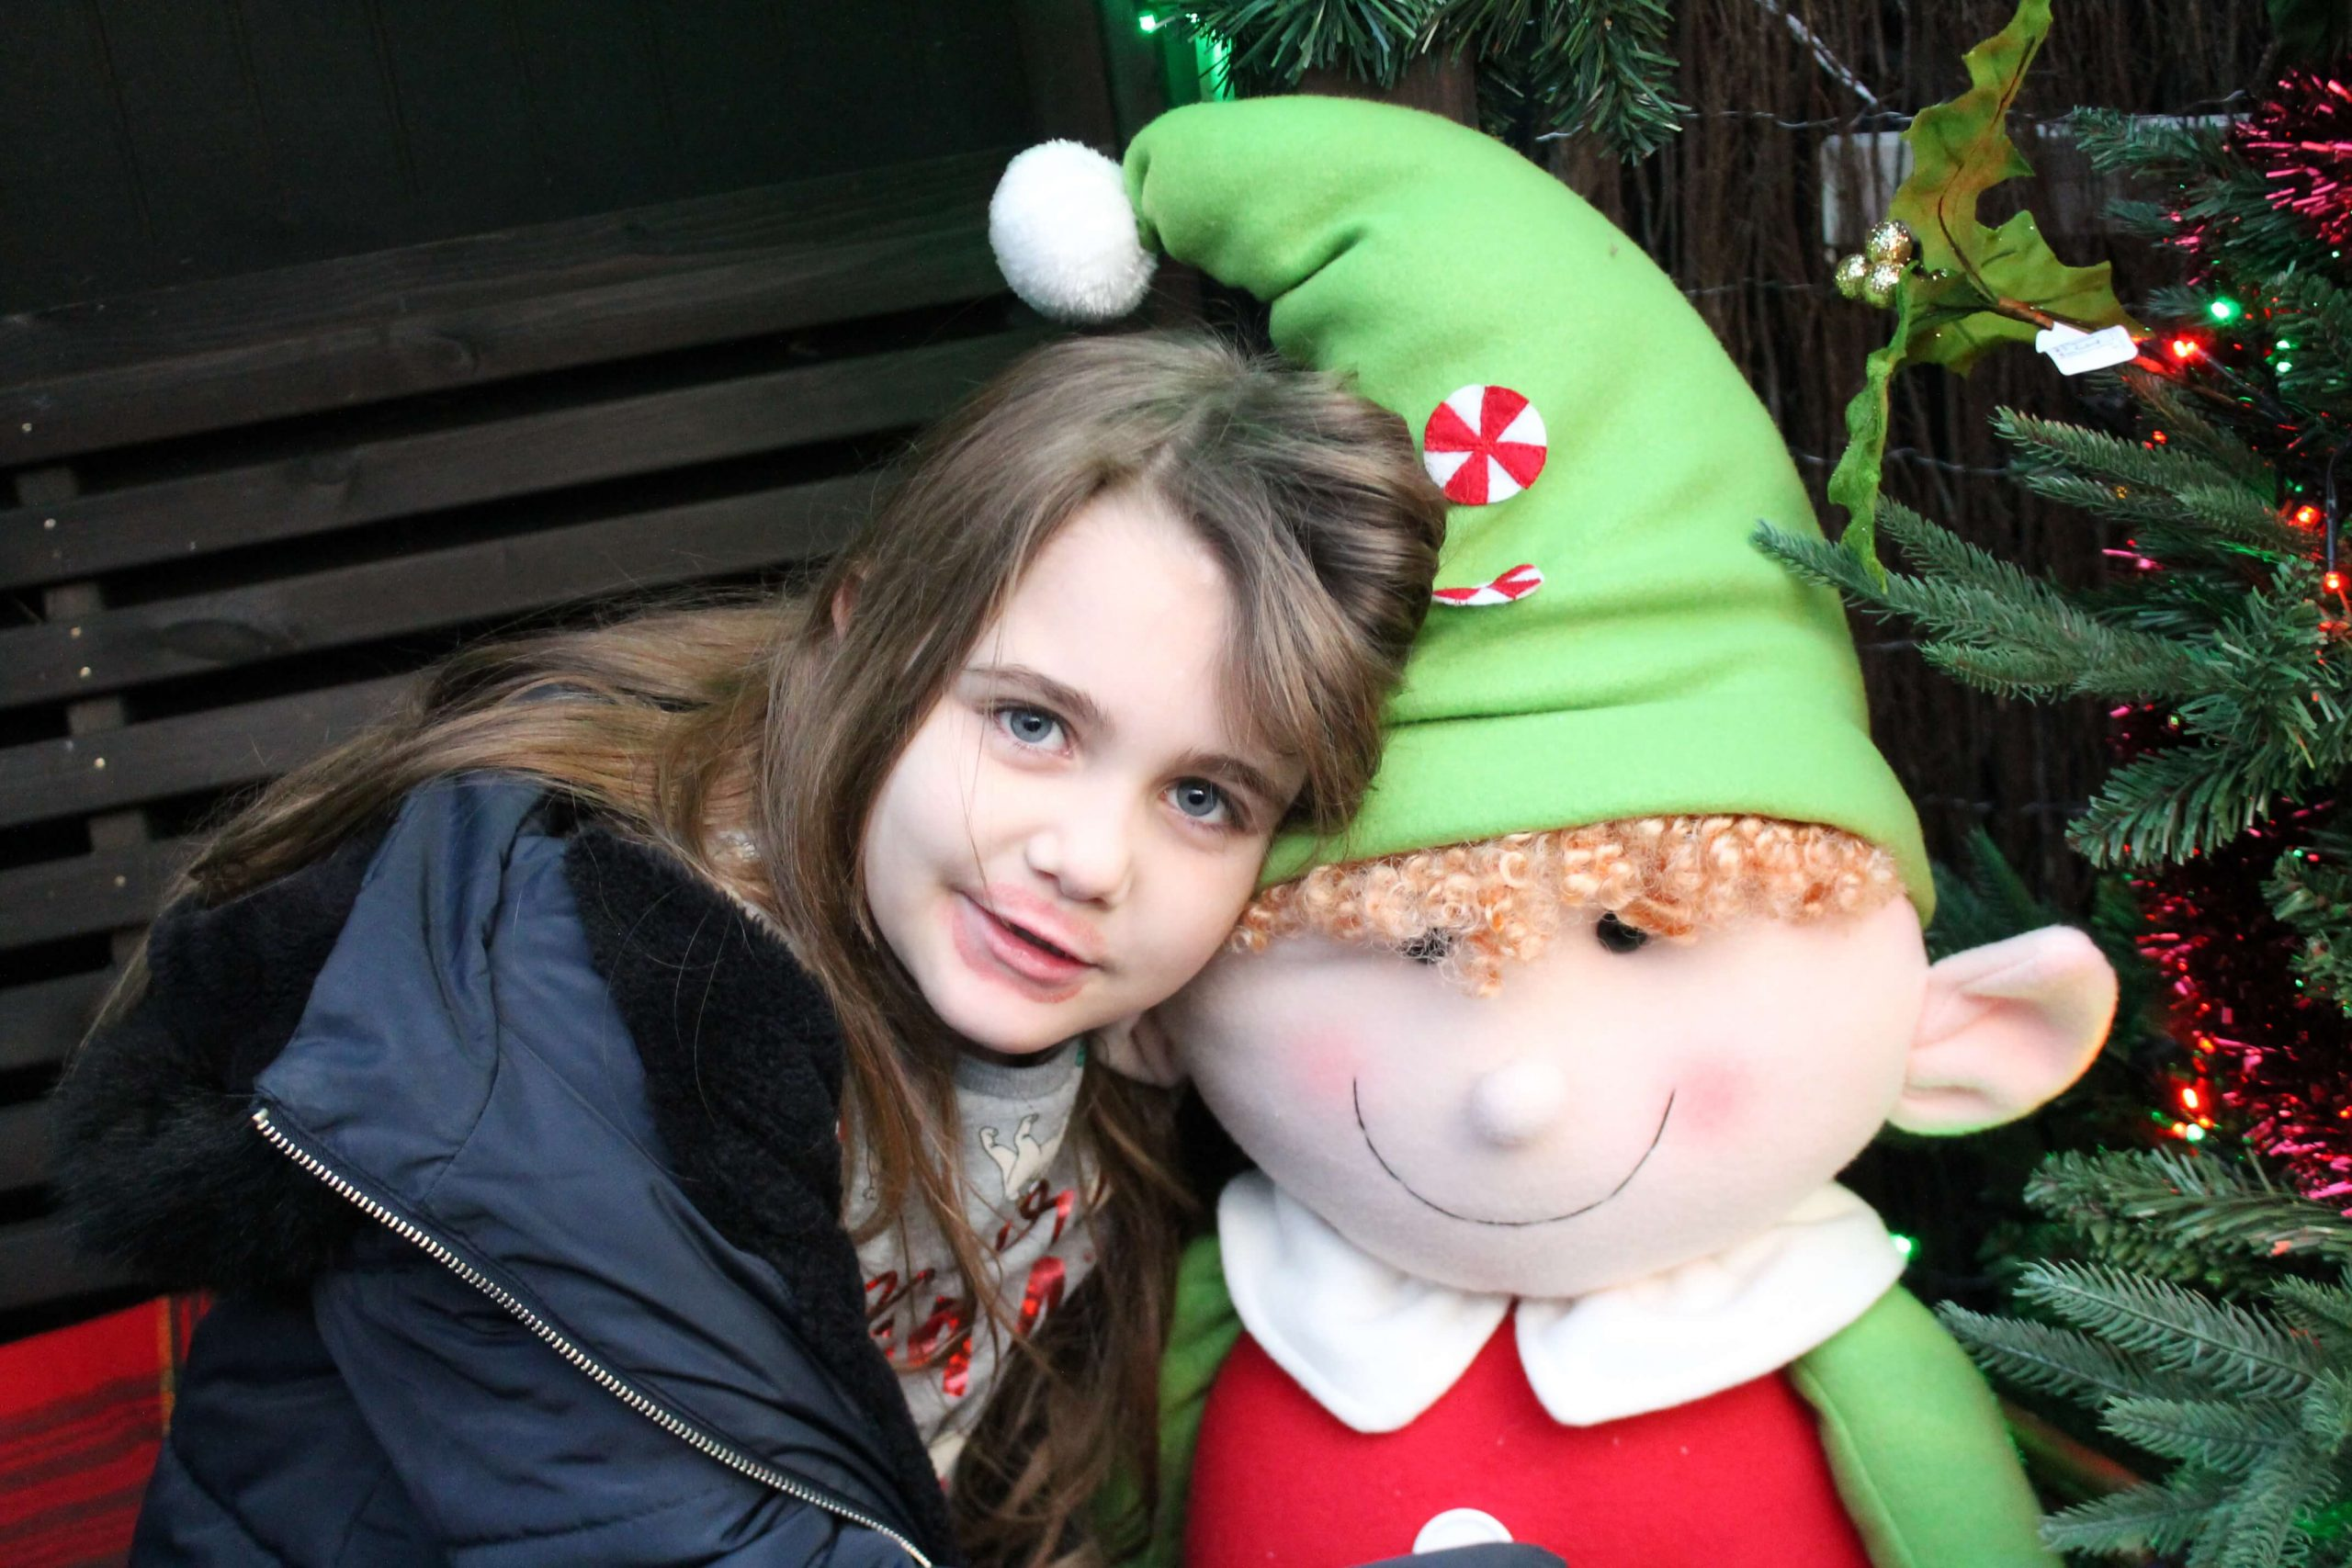 7 year old girl with long brown hair wearing a coat, cuddled up to a cuddly elf with ginger hair and a green pointy hat